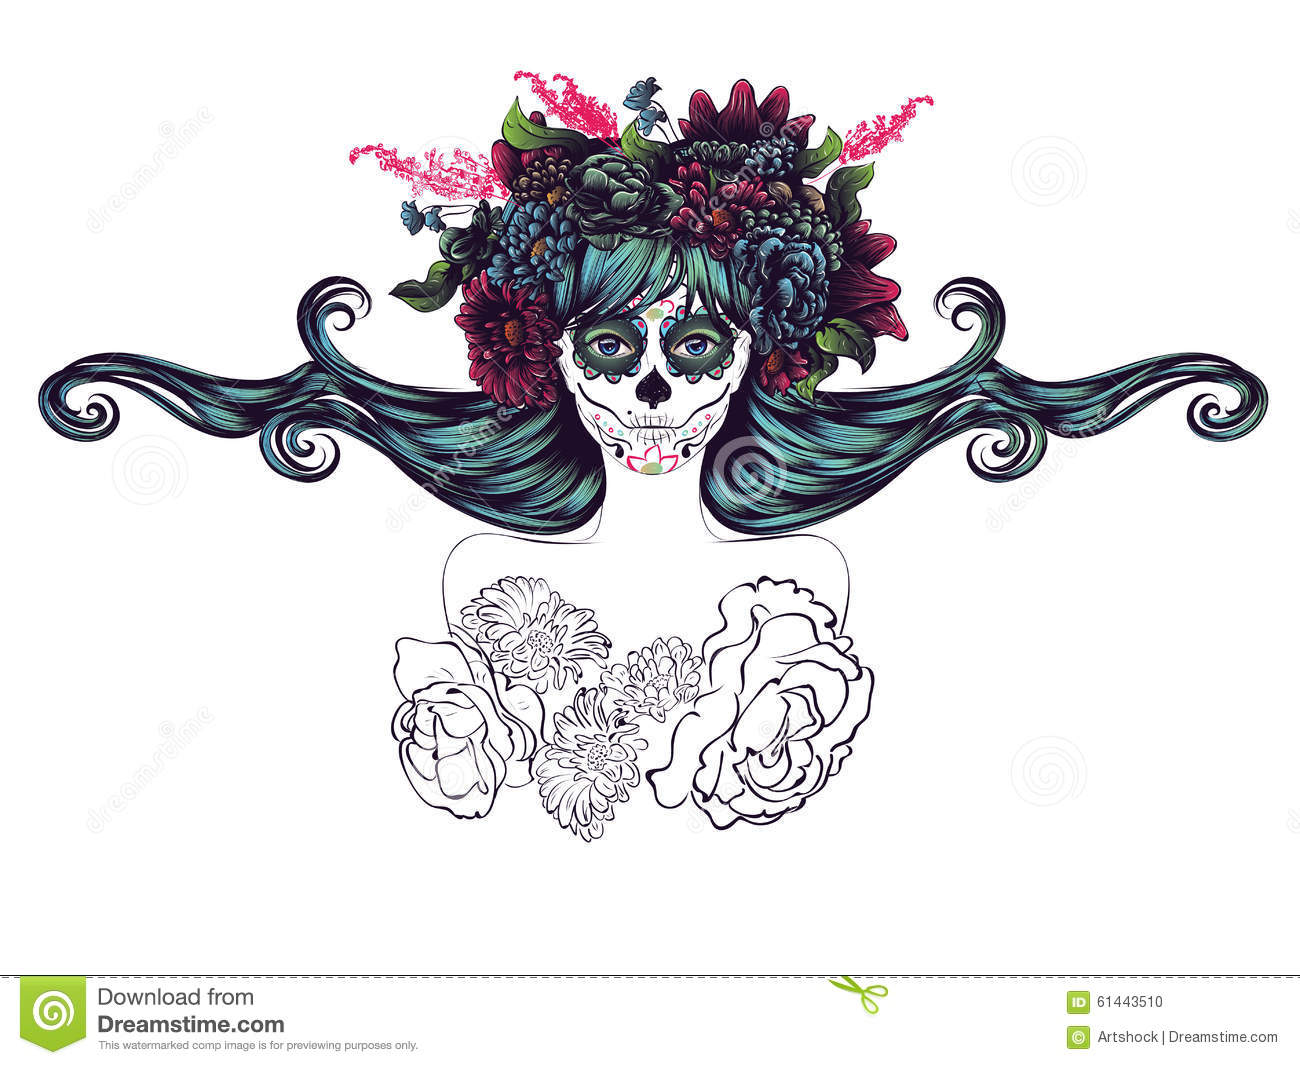 a1cf274f1 Day of the Dead illustration with sugar skull girl in decorative flower  wreath.